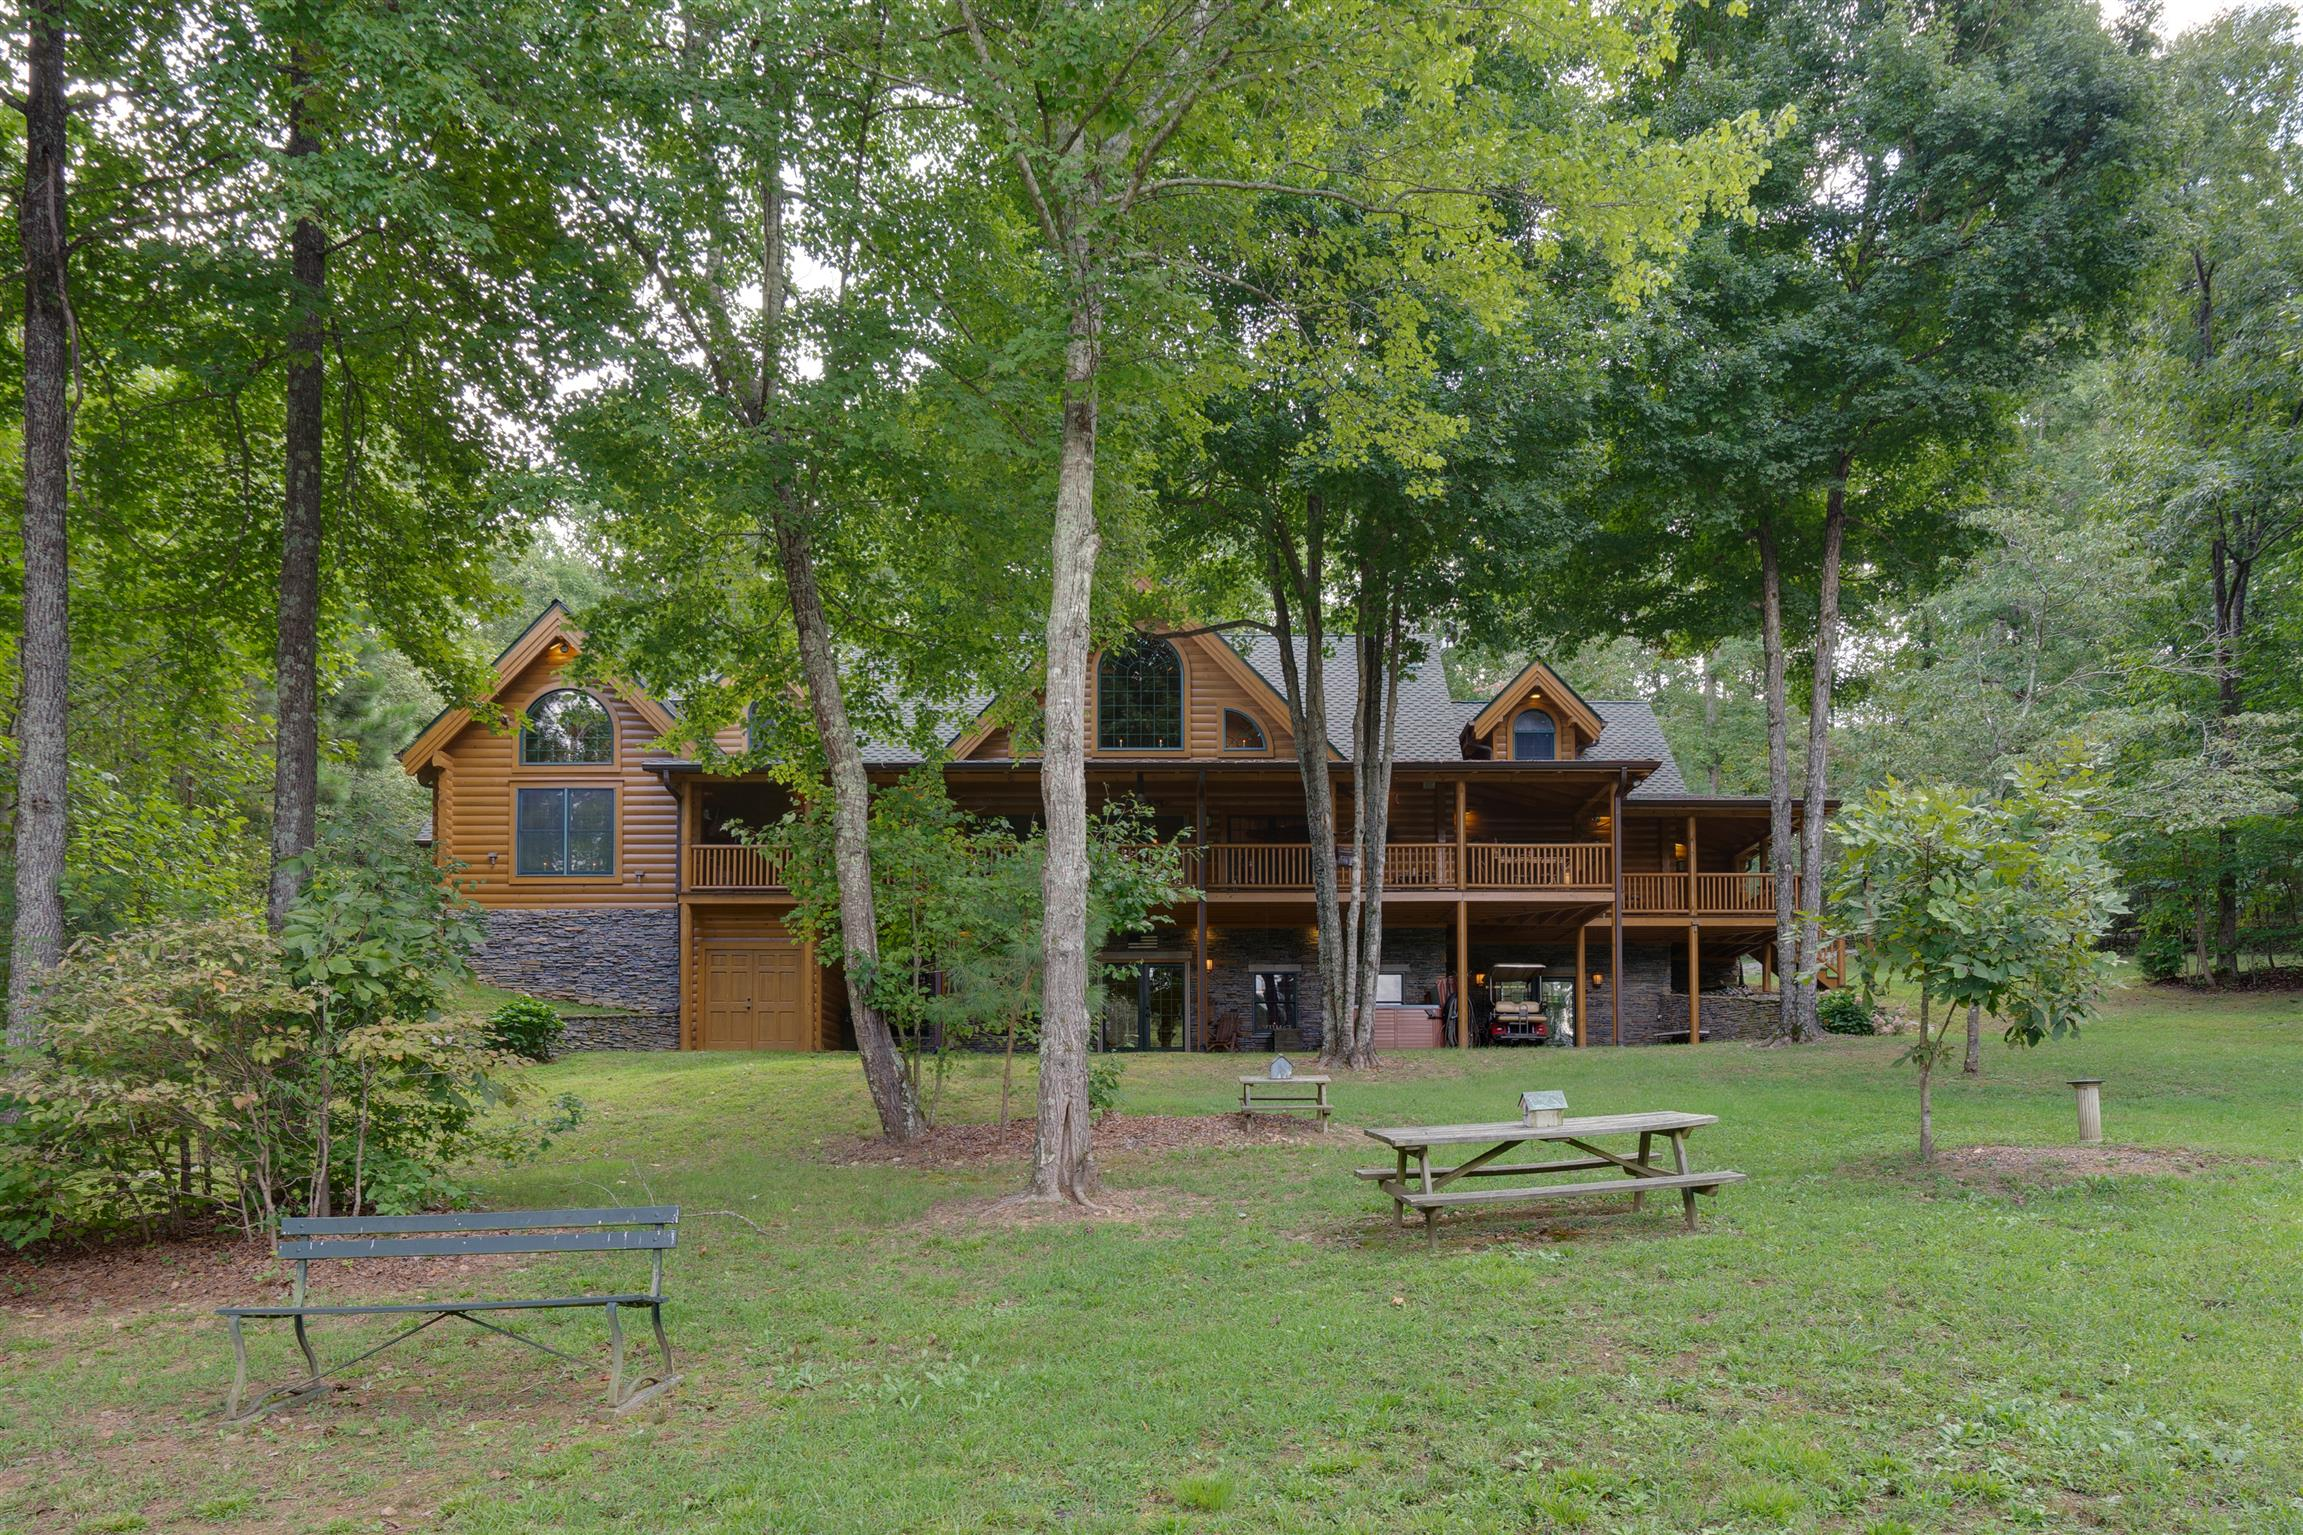 511 Covered Bridge Ln, Summertown, TN 38483 - Summertown, TN real estate listing